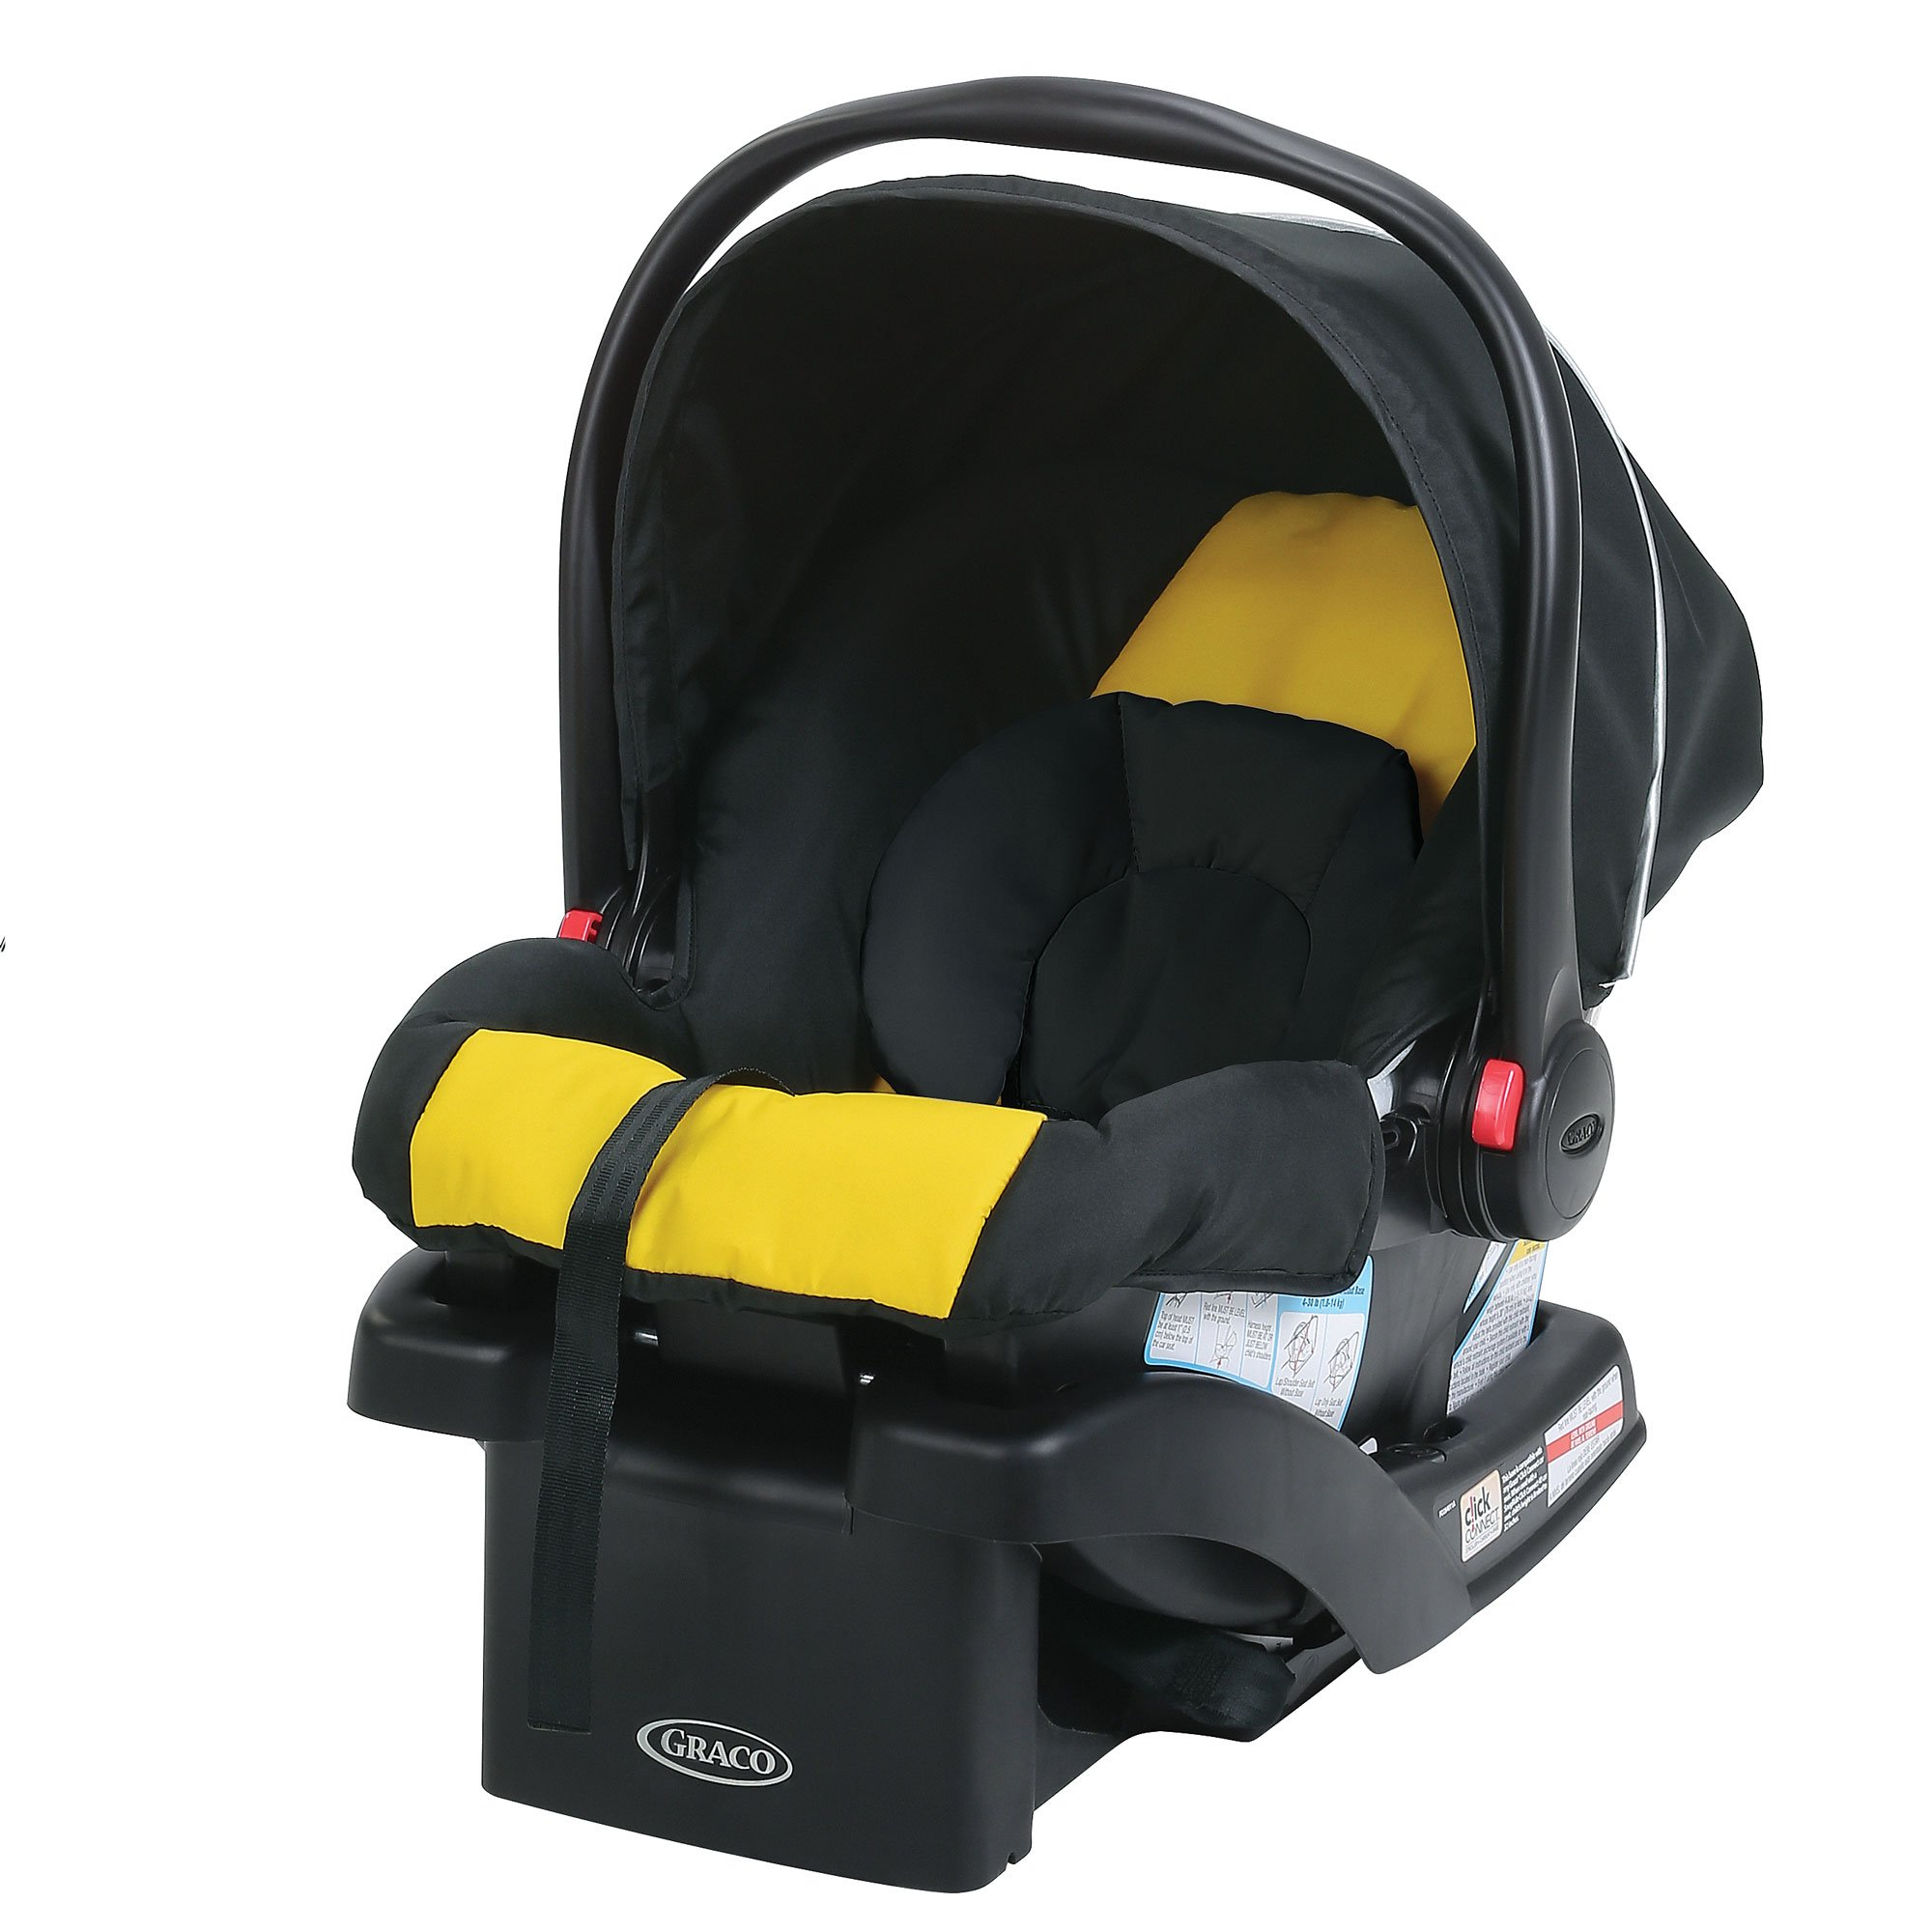 Graco Trax Click Connect Jogger Travel System by Graco (Image #4)